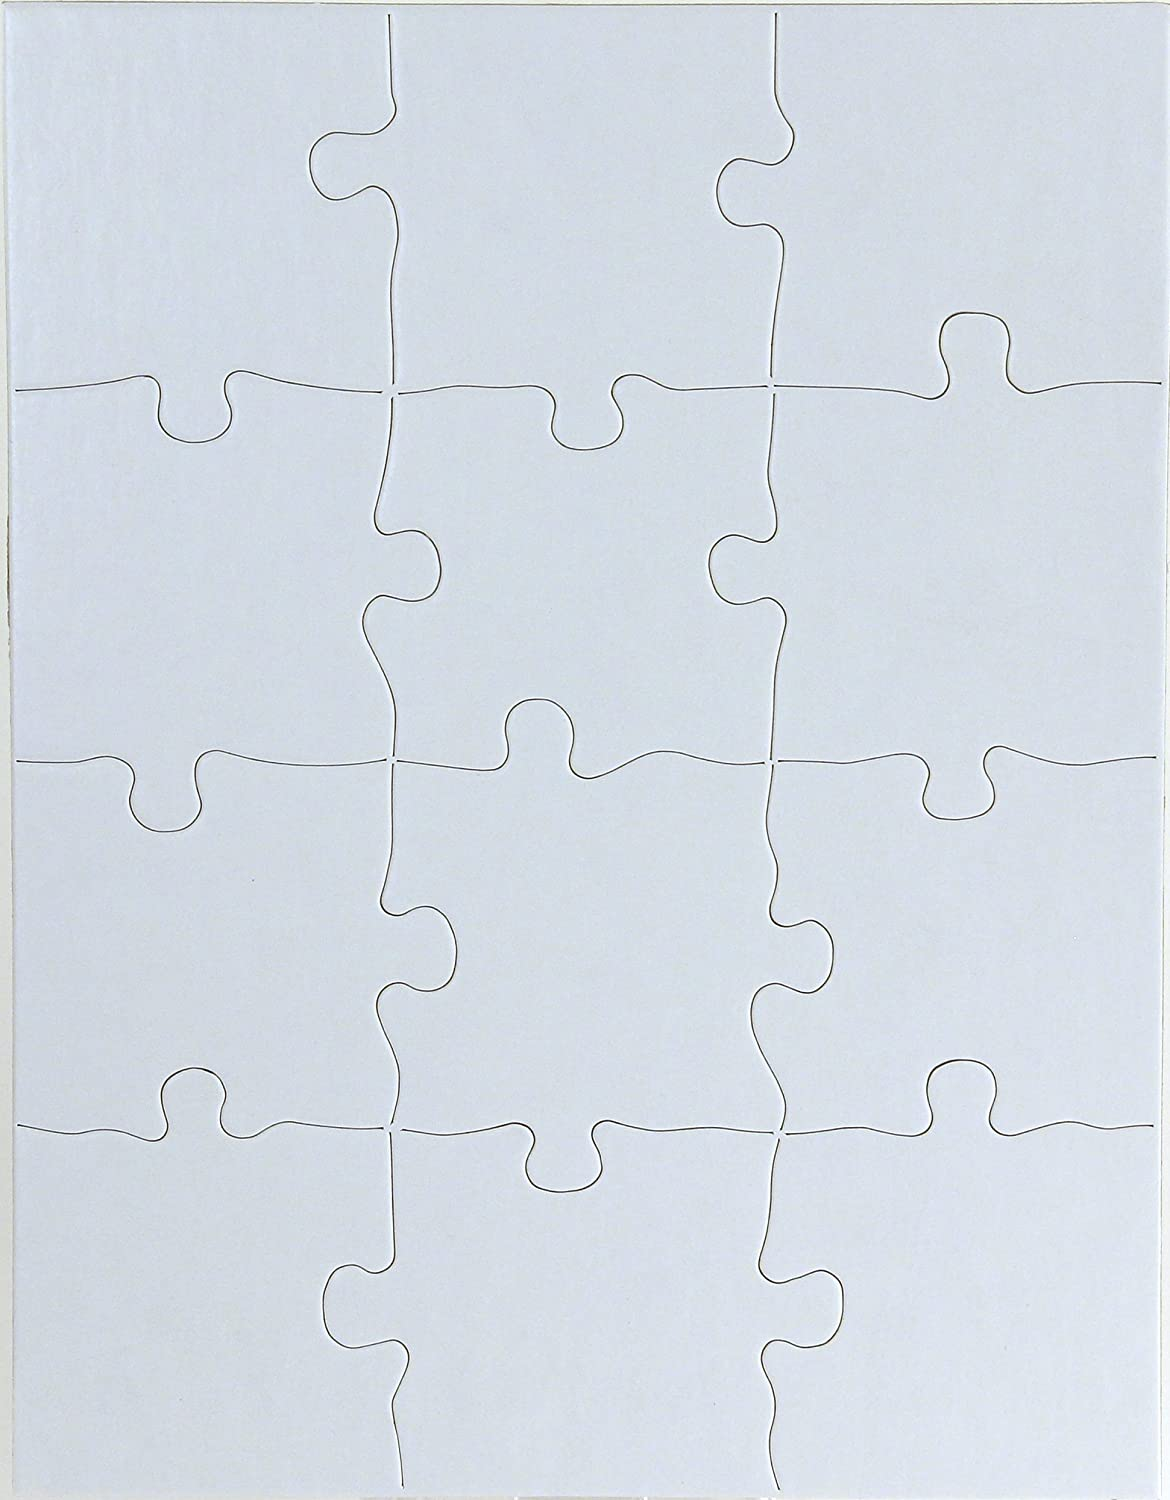 Hygloss Products Blank Jigsaw Puzzle – Compoz-A-Puzzle – 8.5 x 11 Inch - 12 Pieces, 100 Puzzles